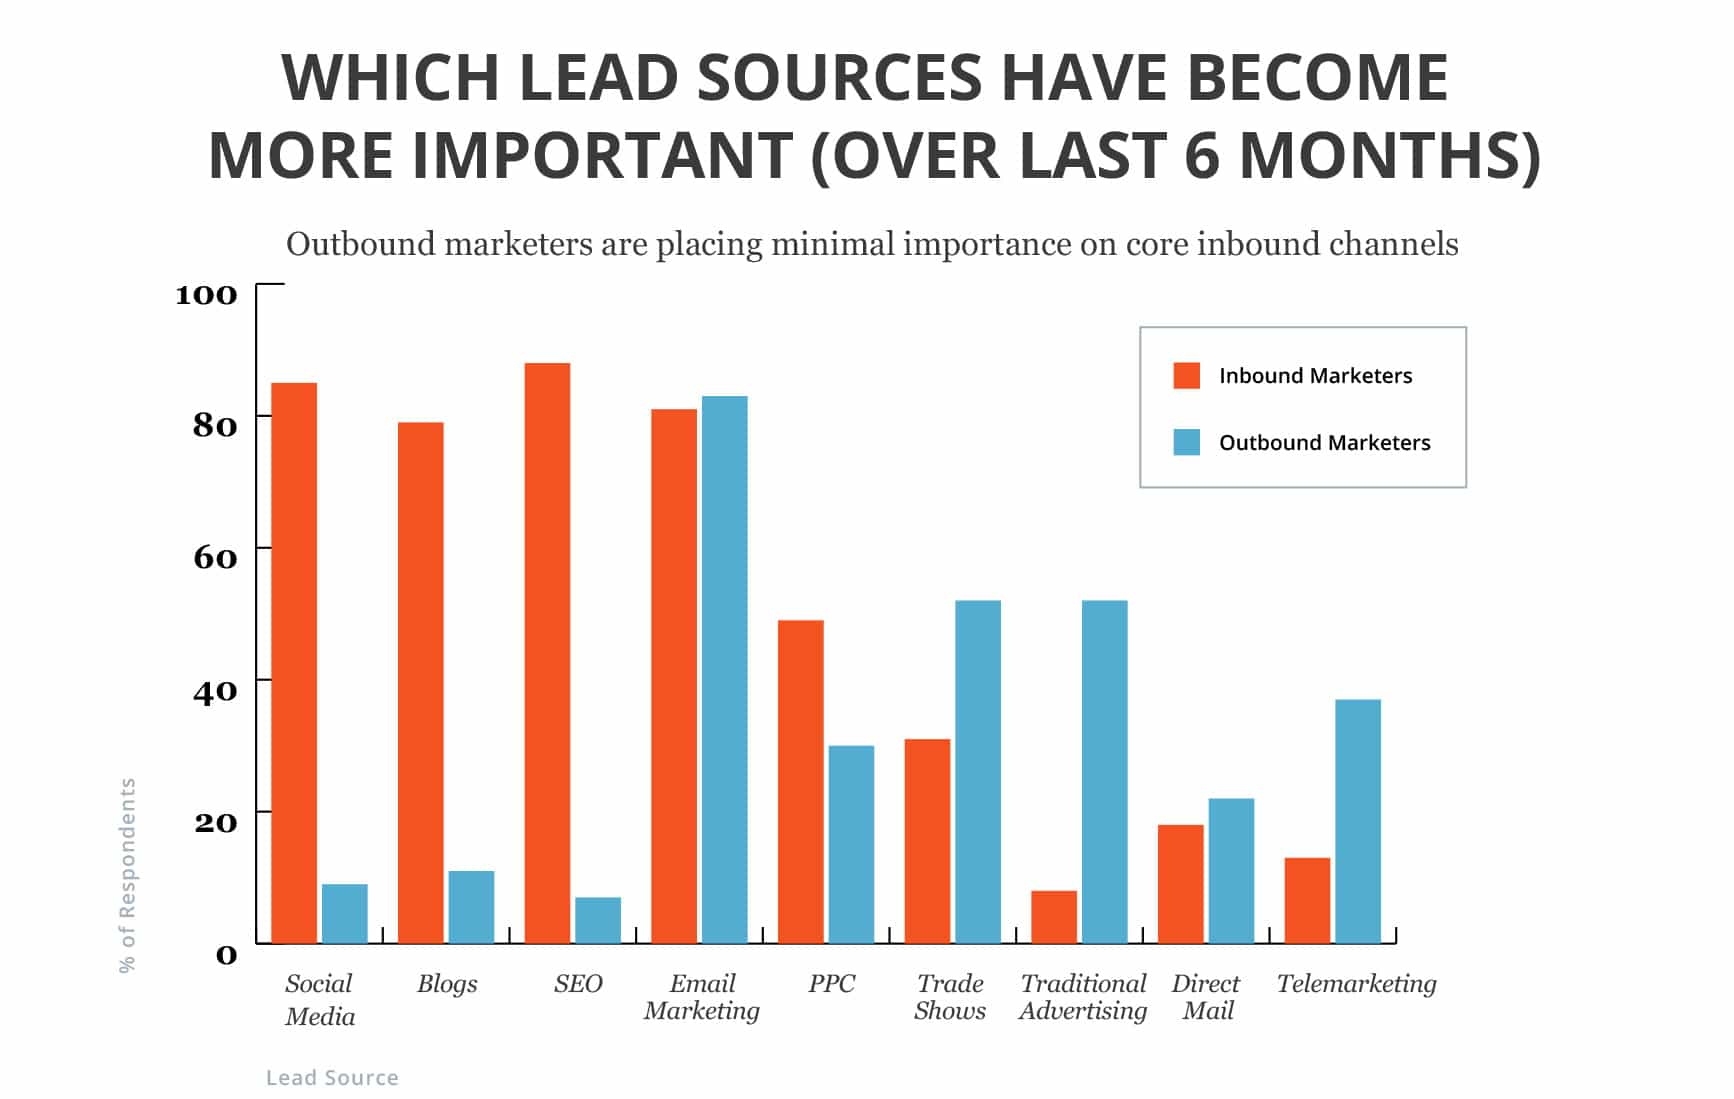 Inbound and Outbound Marketing Leads Sources